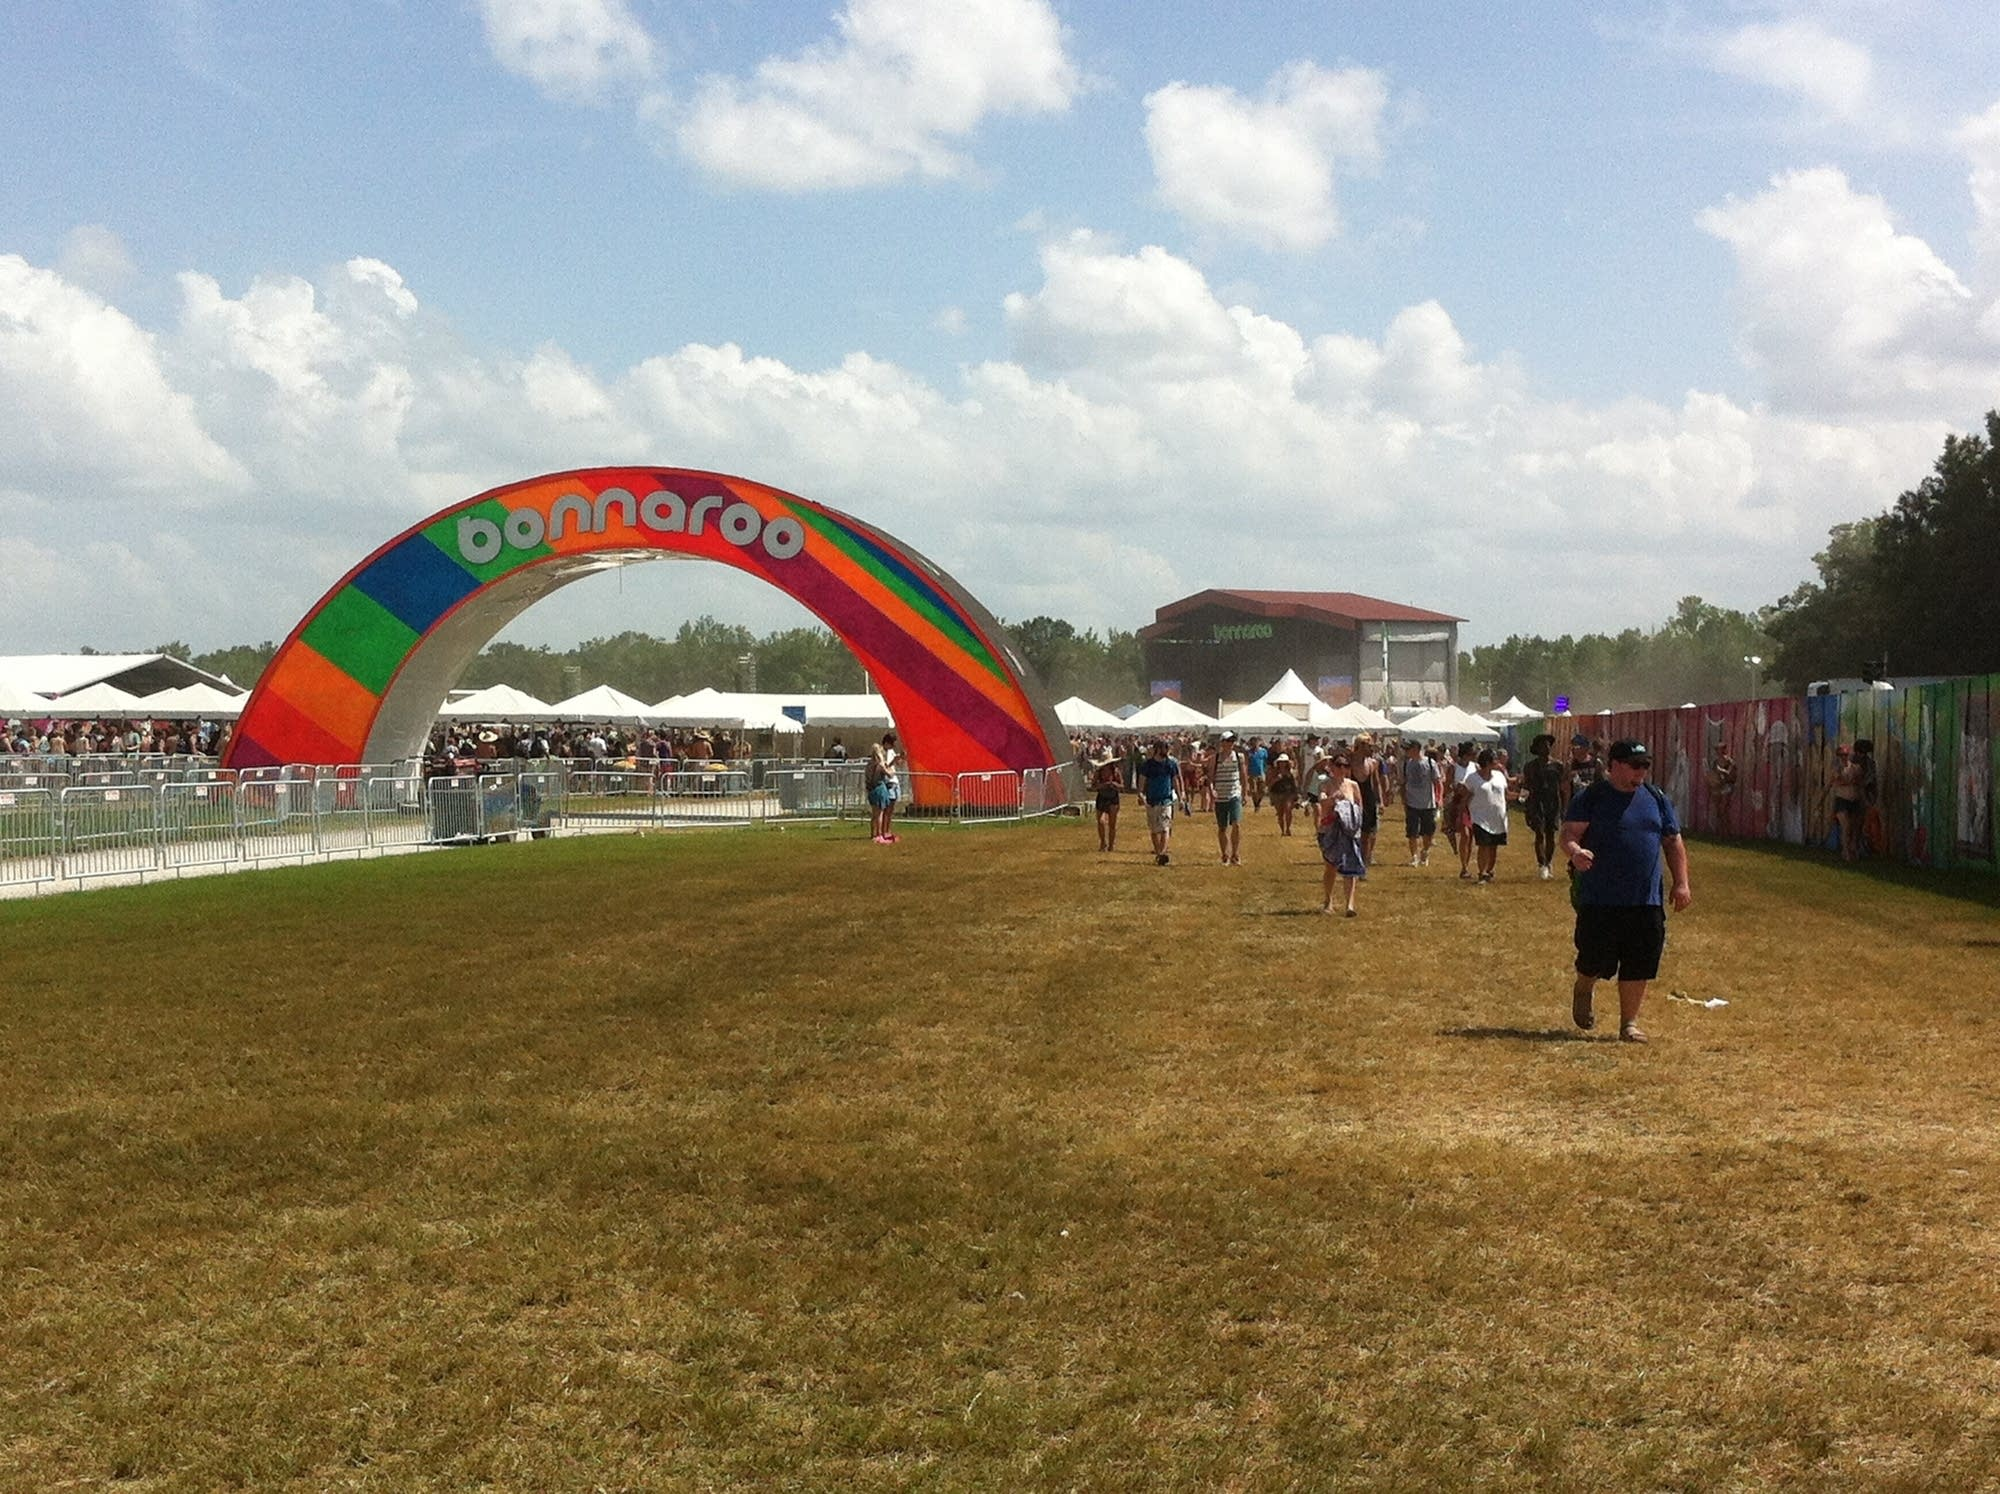 The Bonnaroo arch